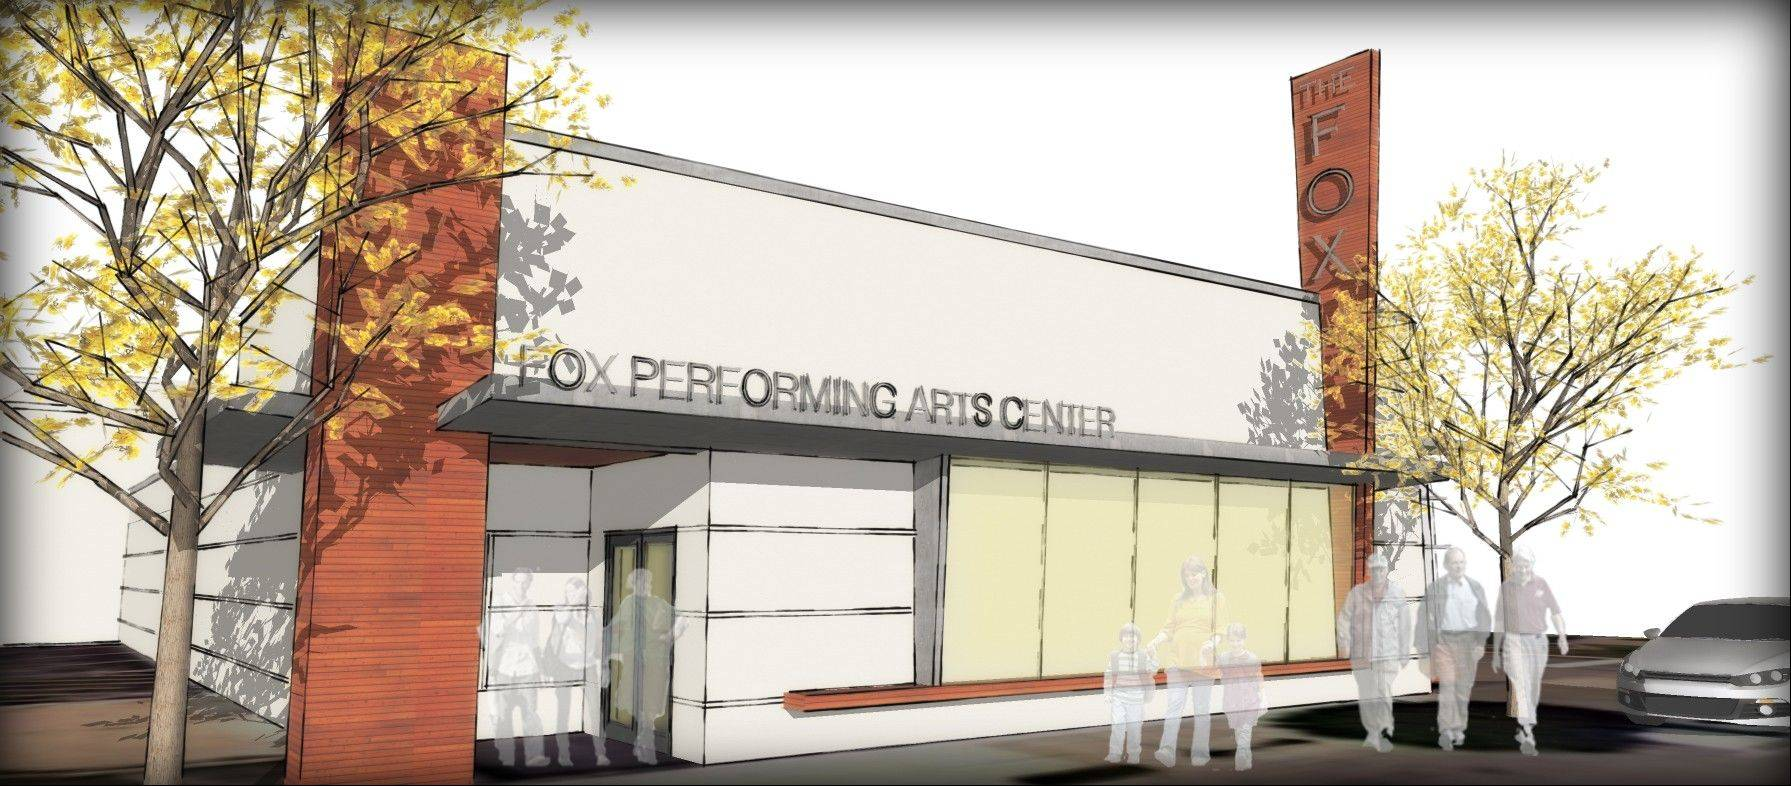 A rendering of what the old Ziegler's Ace Hardware store in downtown West Dundee would look like if it's converted into the Fox Performing Arts Center.